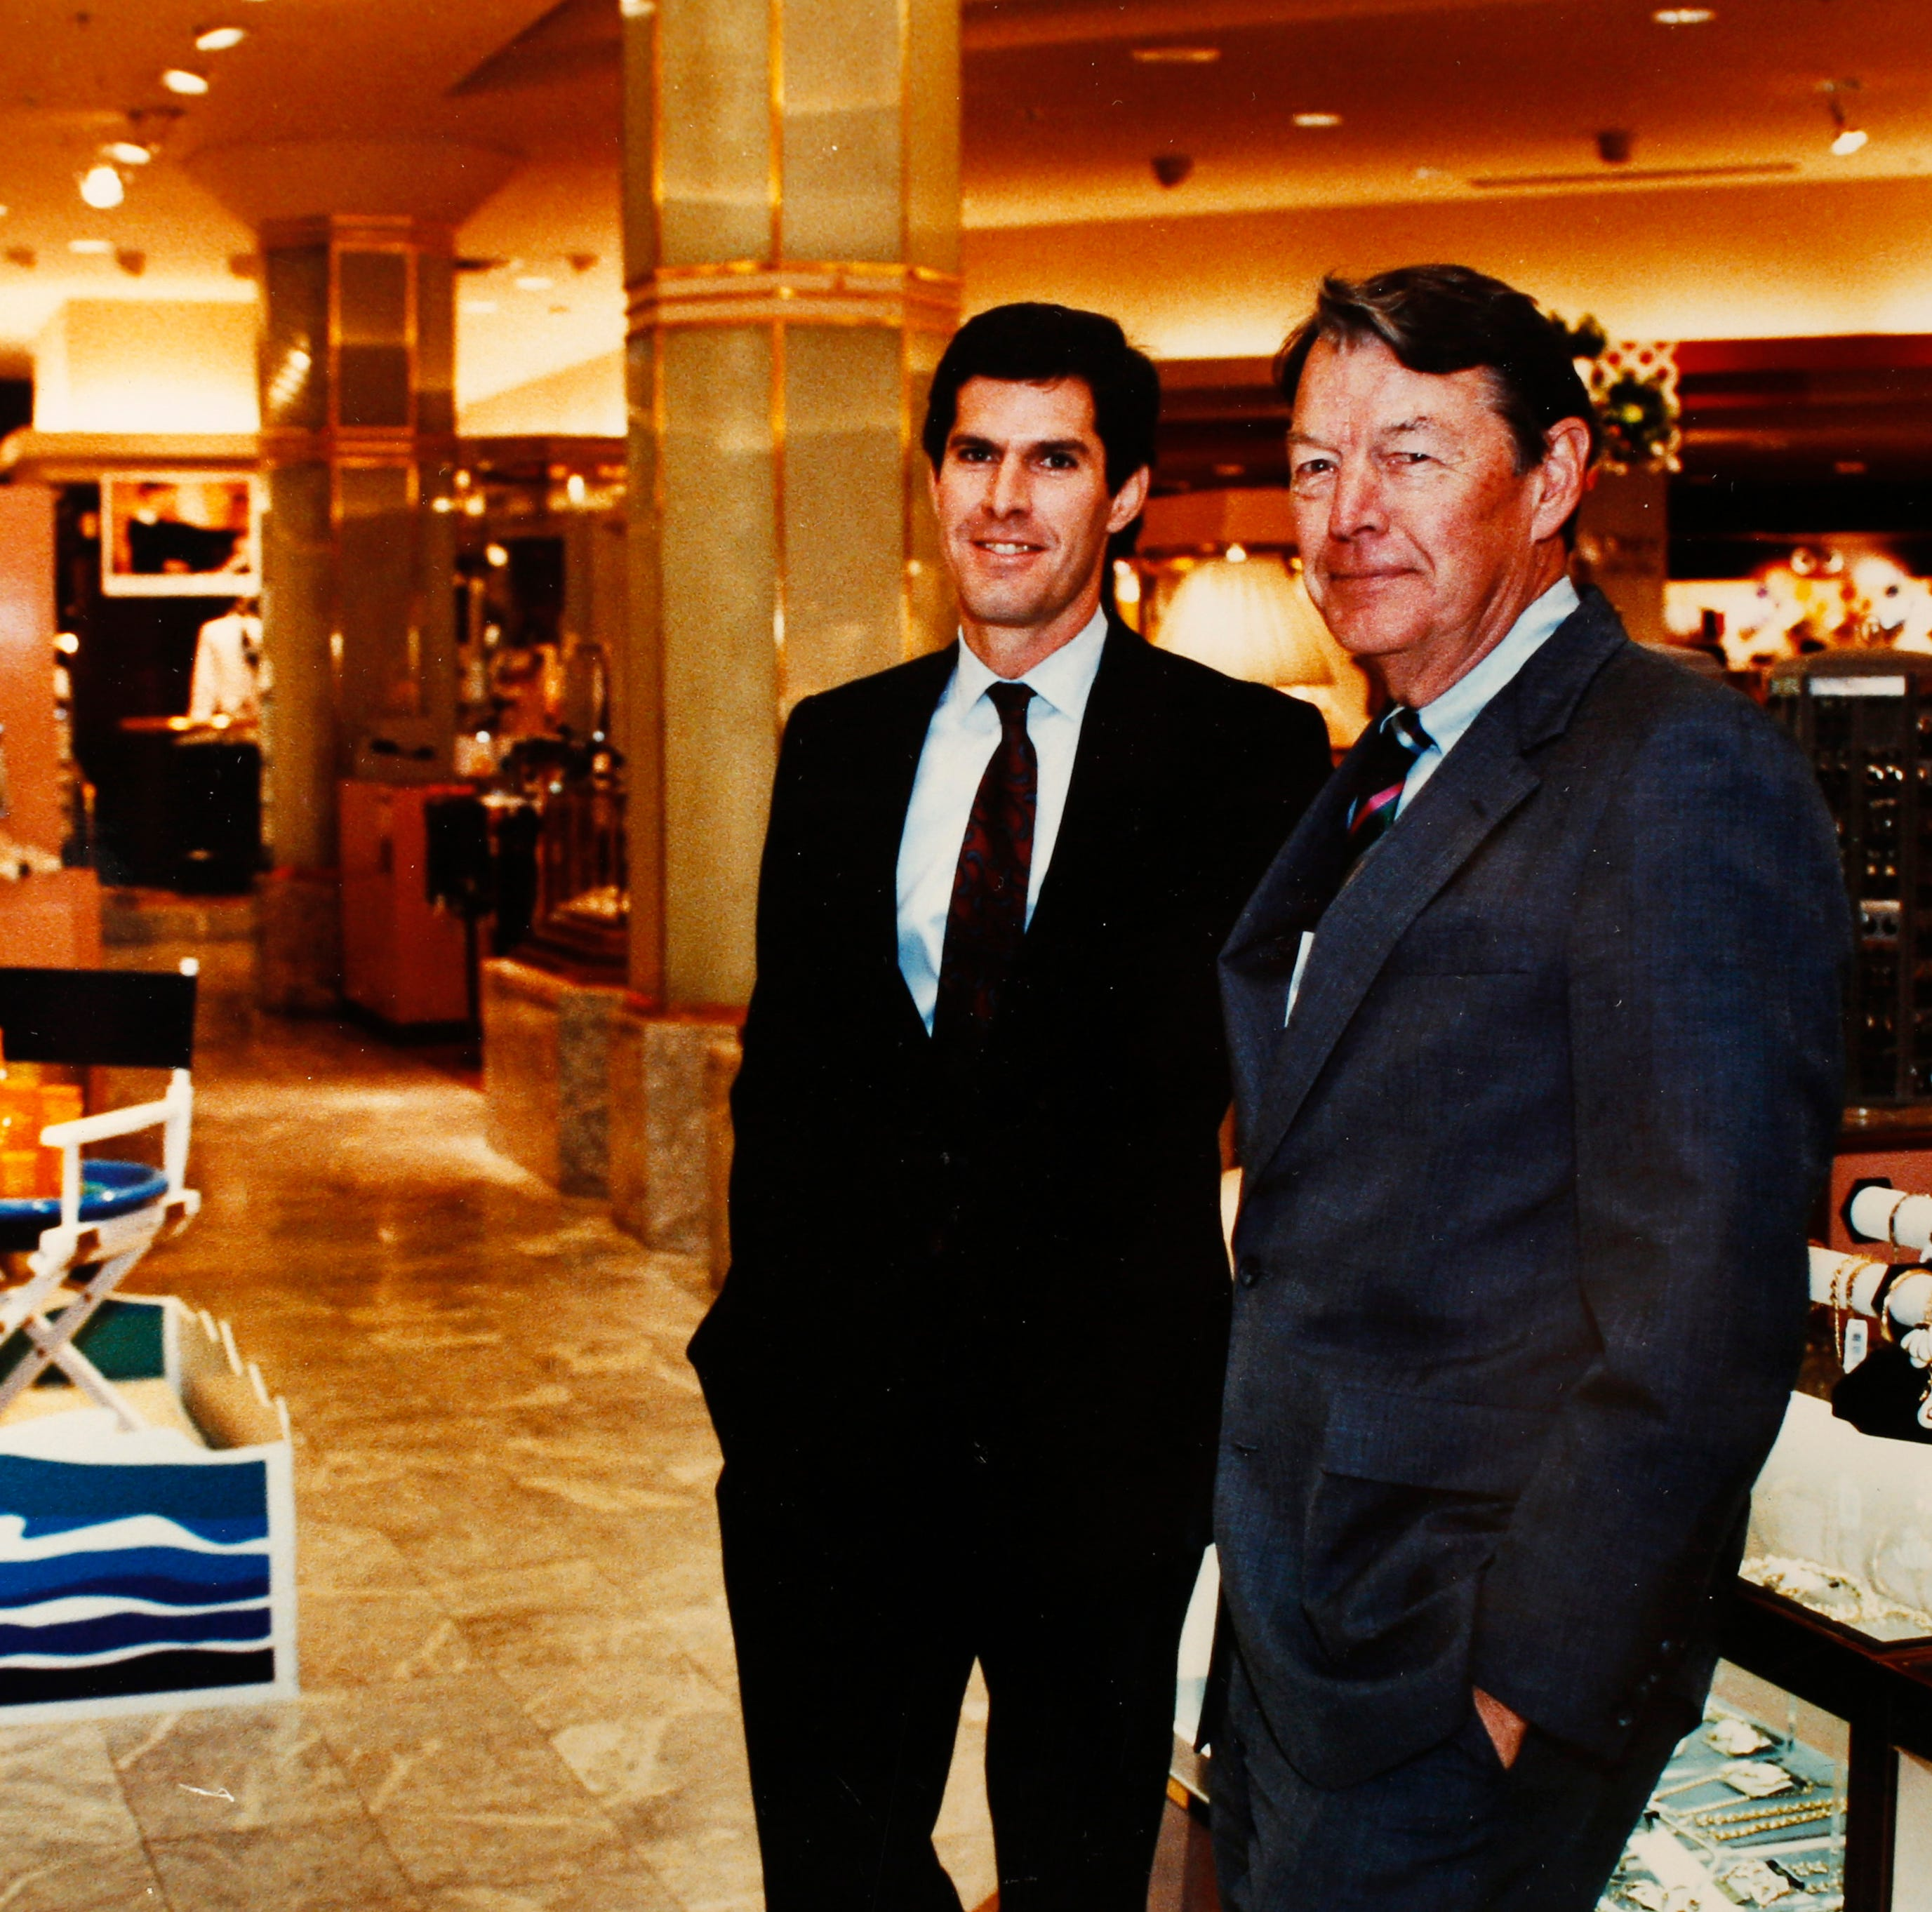 Fred Hubbell (left) and Jim Hubbell, Jr., at the downtown Younkers department store May 31, 1989 in Des Moines.